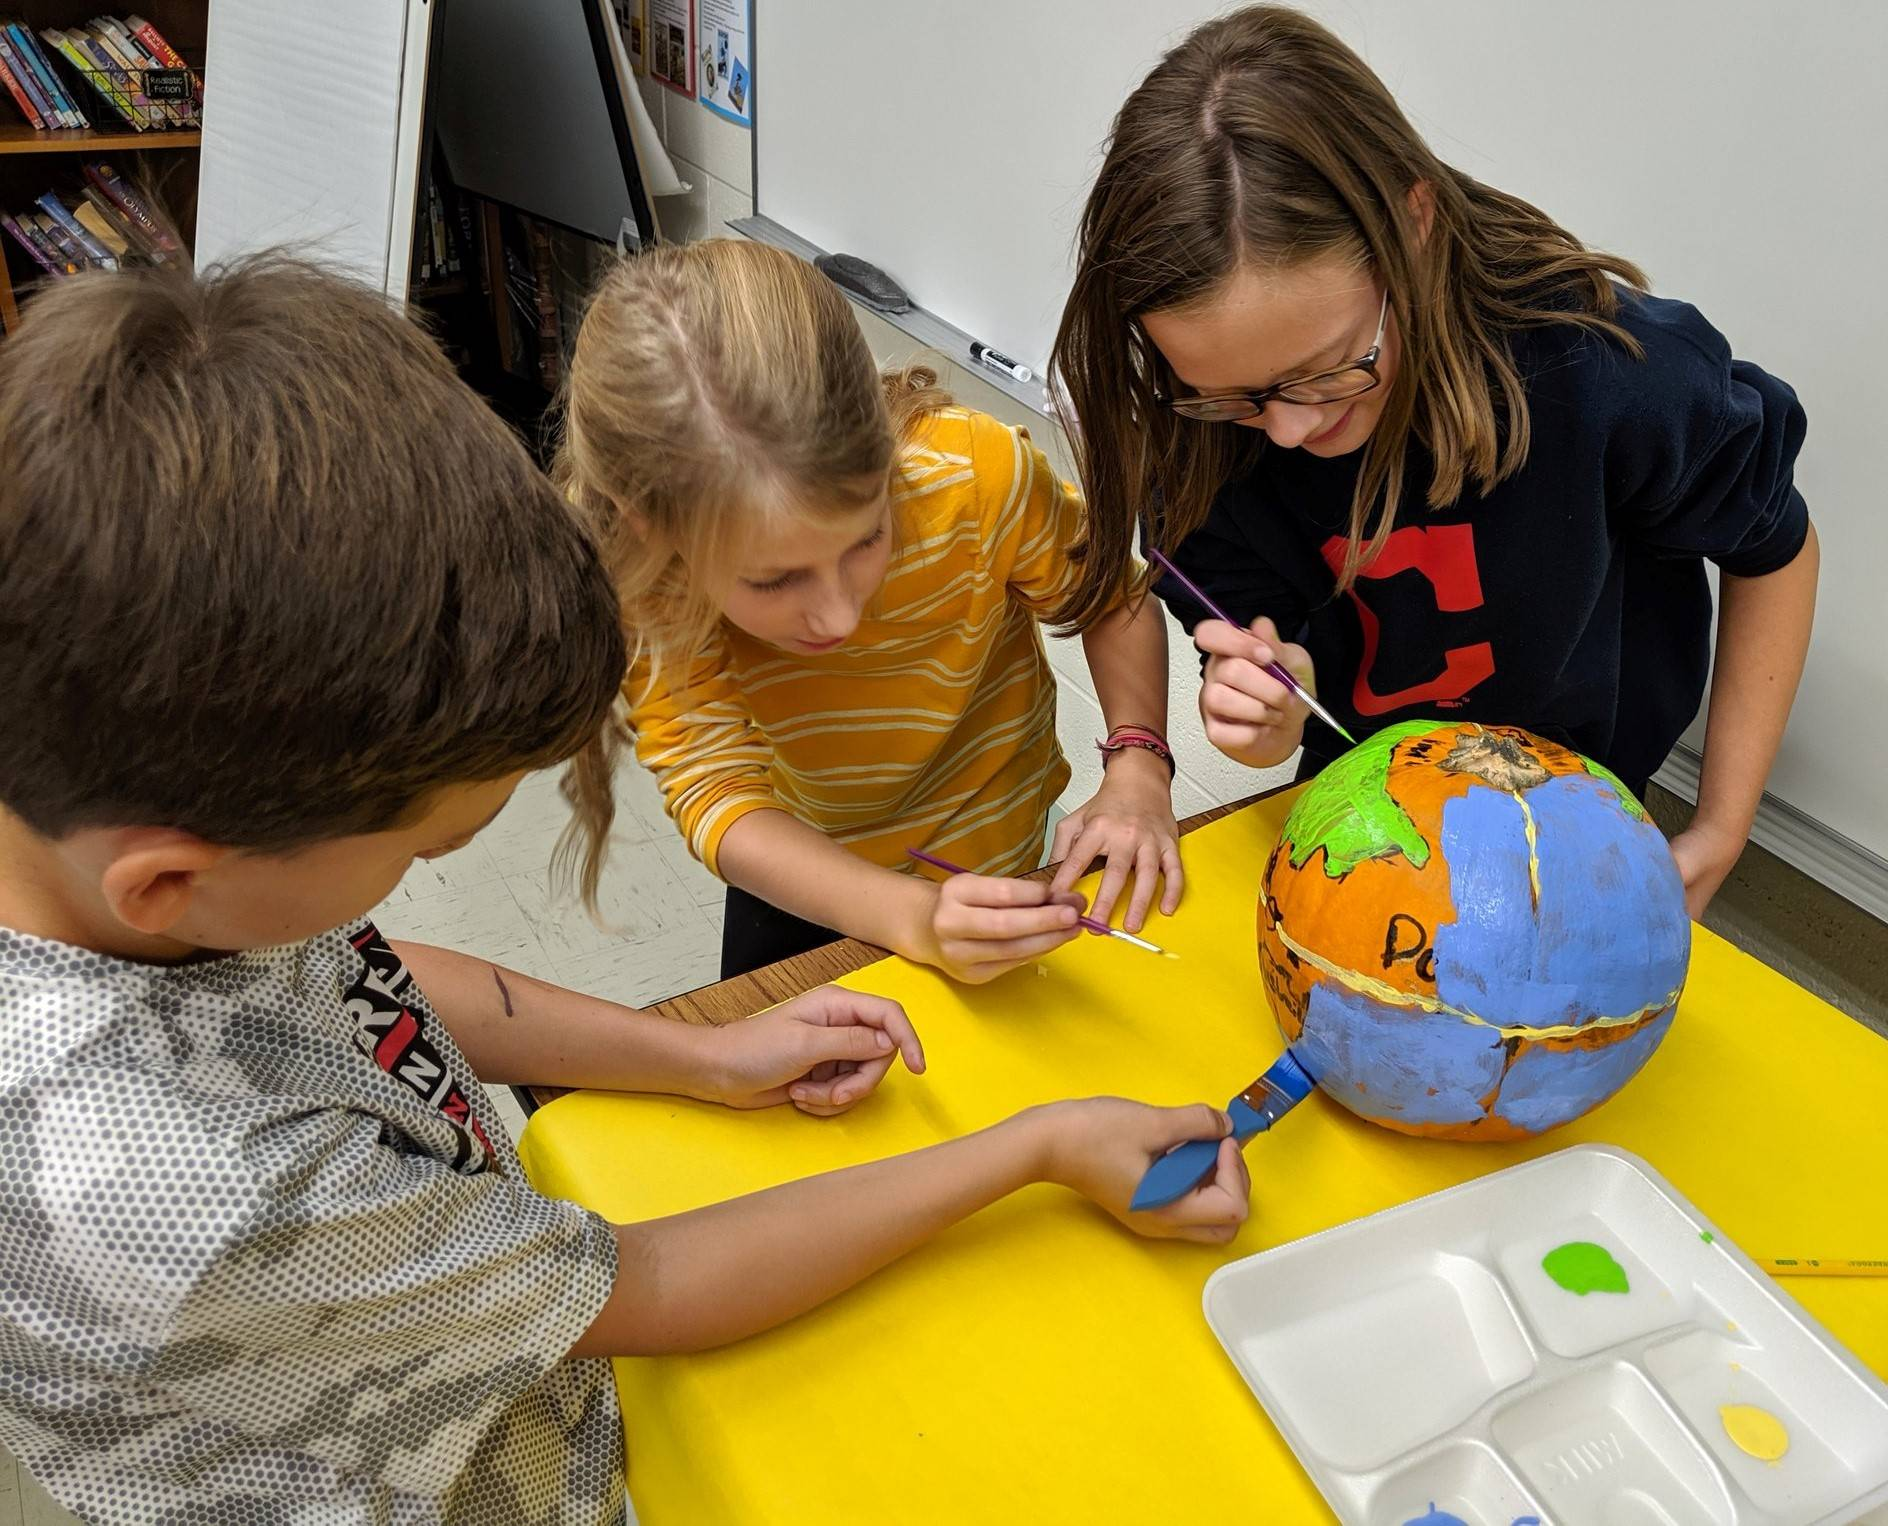 Photo 1:  3 CMS students each (together) painting a pumpkin to look like a globe.